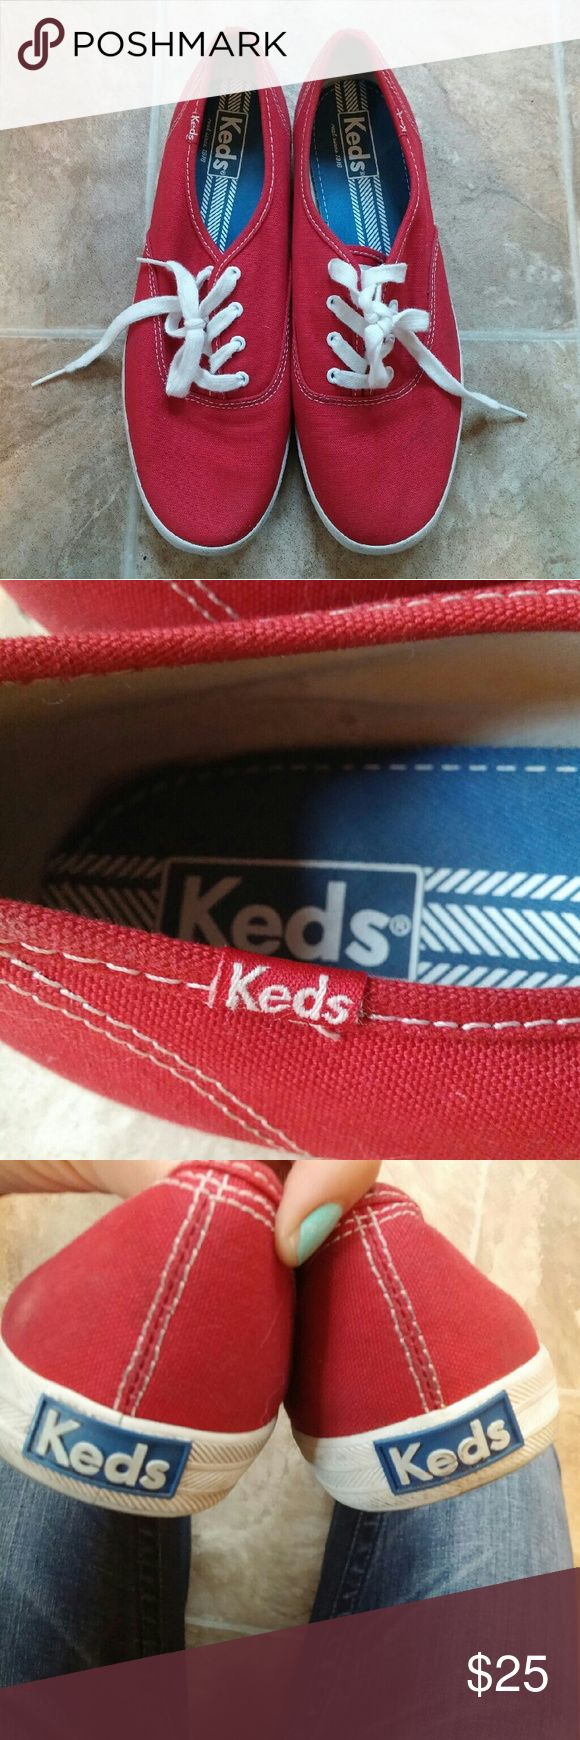 🎉Price Drop🎉Red Keds Sneakers Worn once or twice- great condition Keds Shoes Sneakers